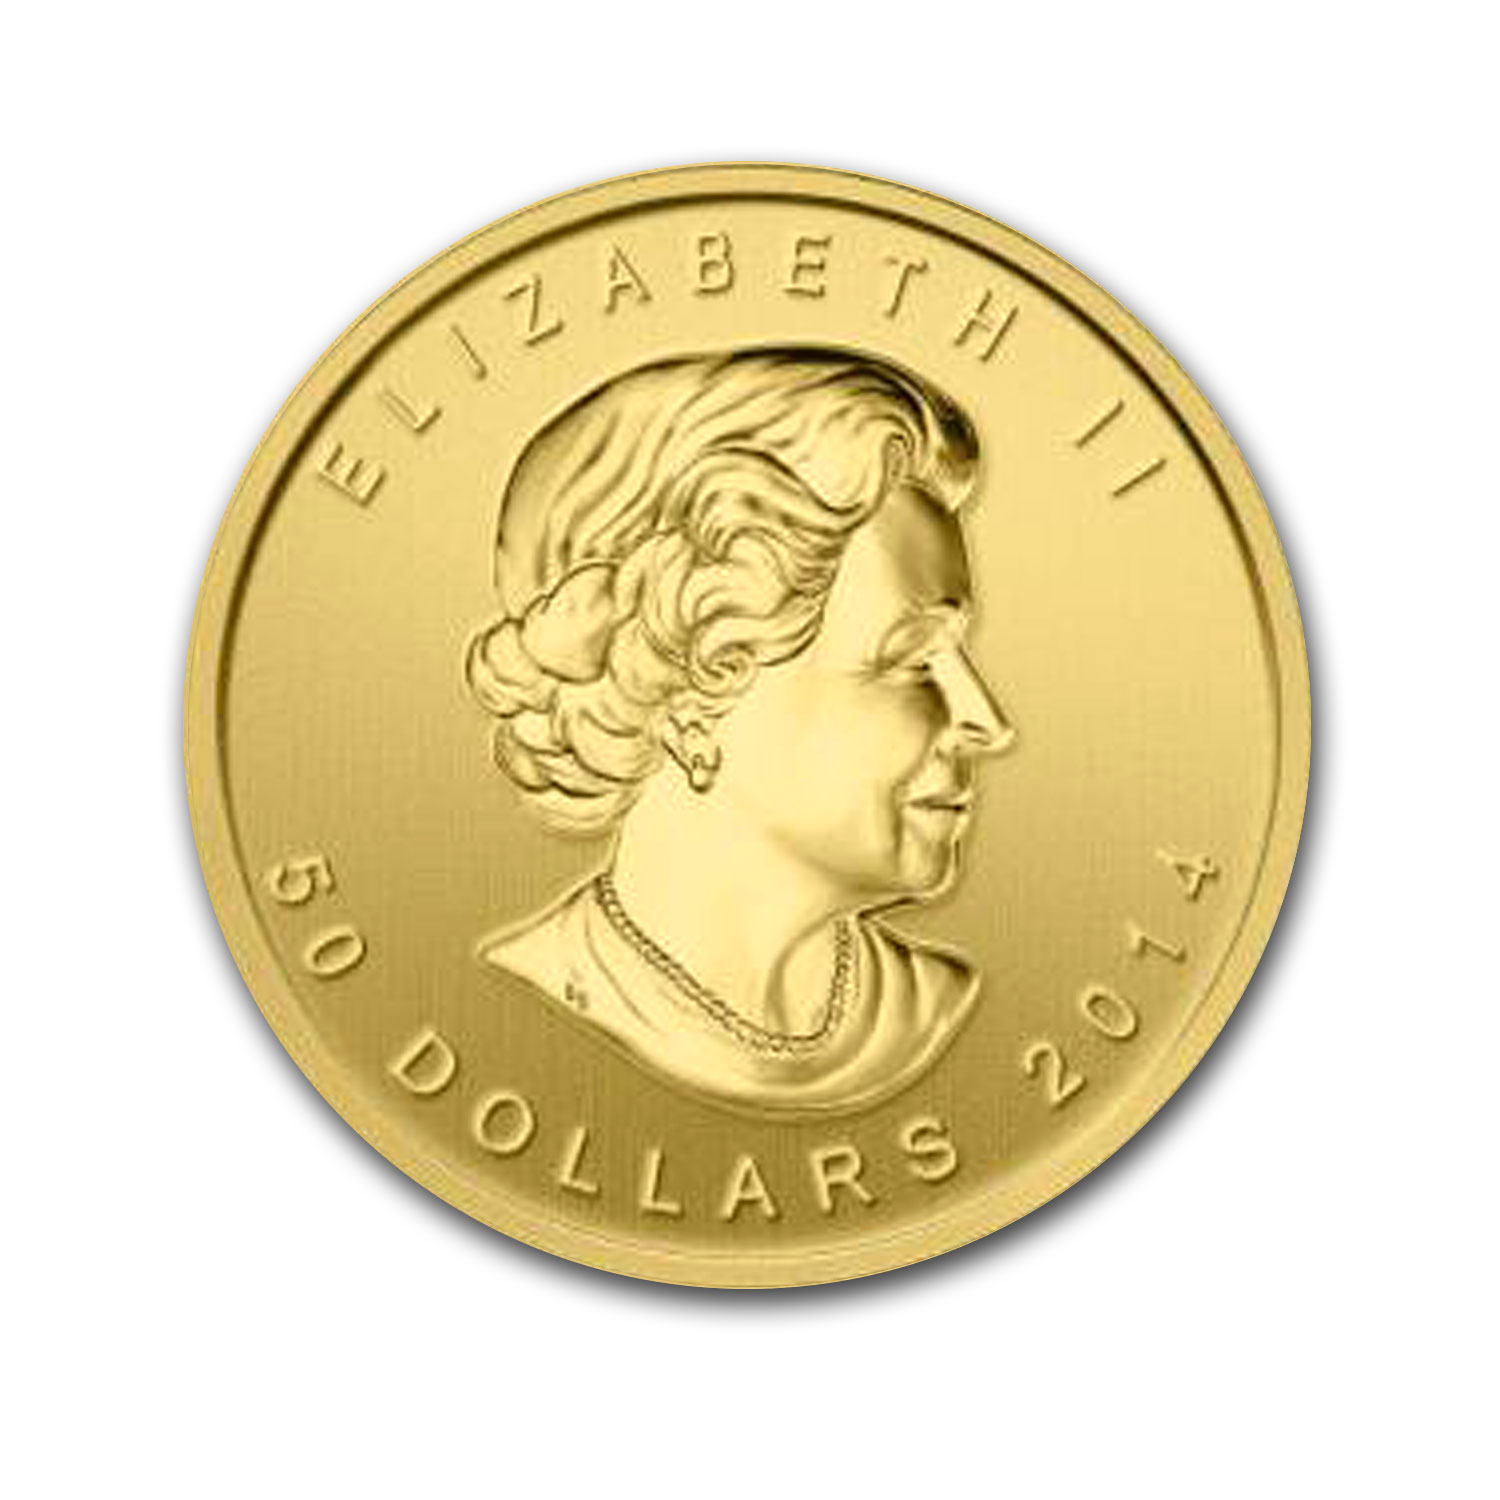 2014 Canada 1 oz Gold $50 Five Blessings BU